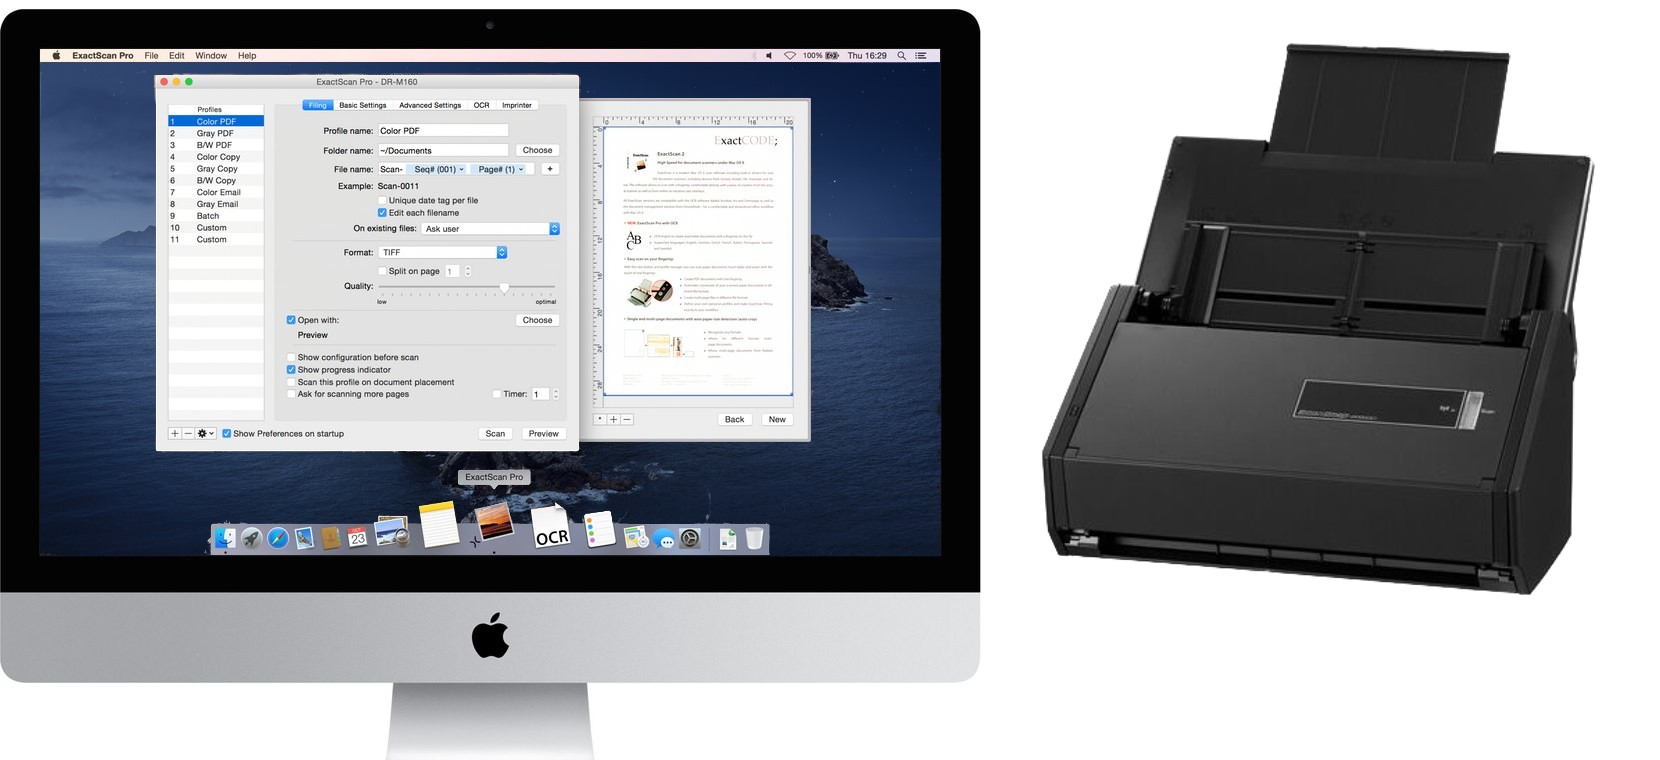 ExactScan - High Speed Document Scanning